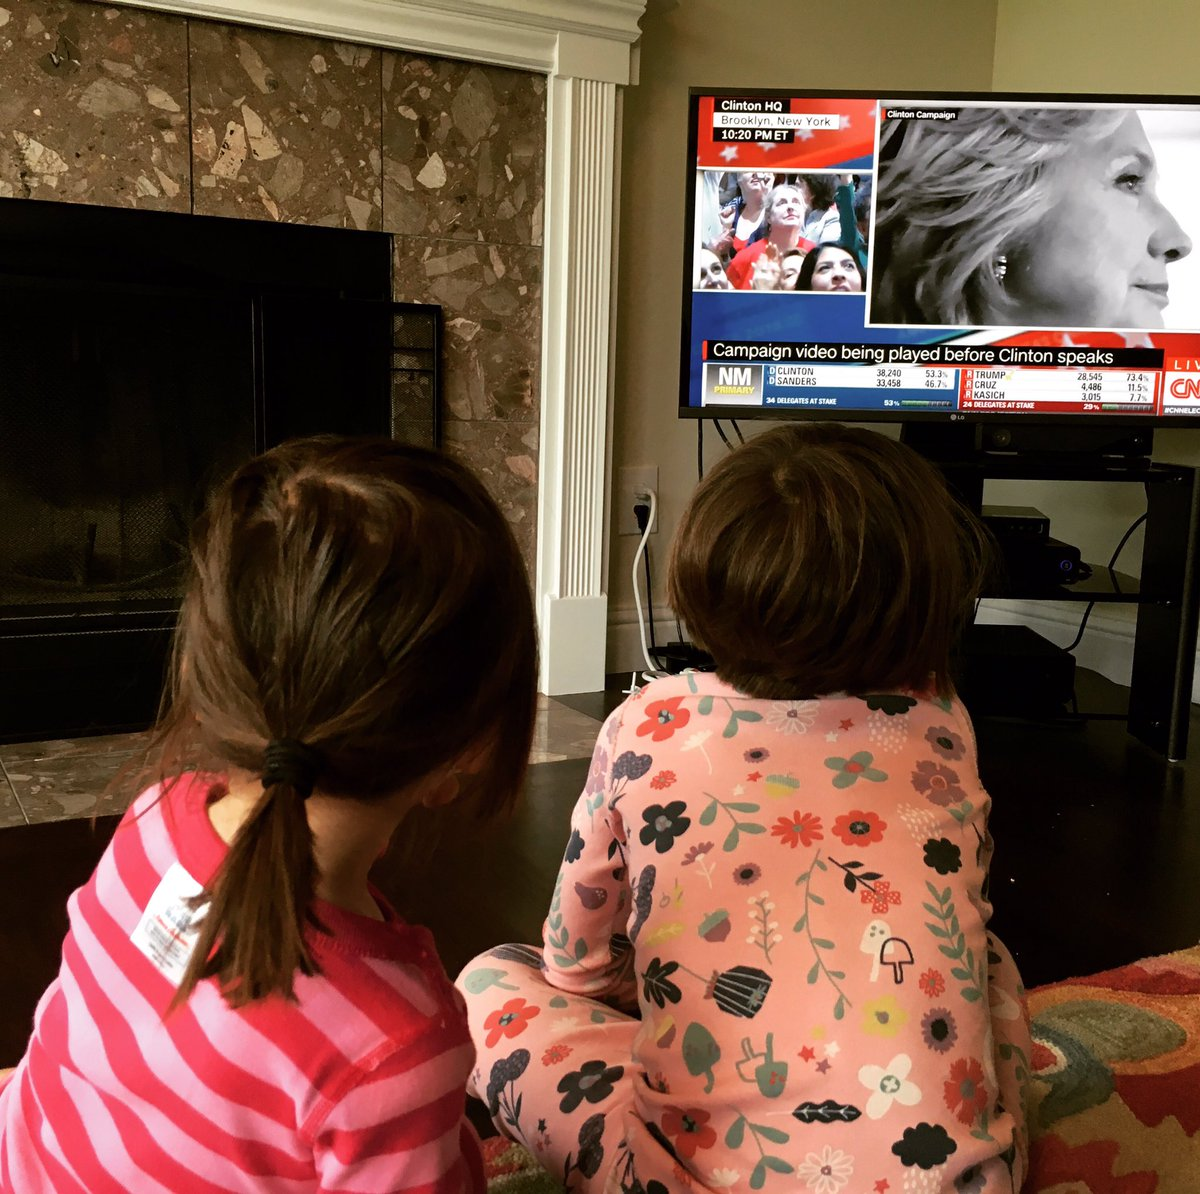 Our girls watching history being made!  #ImWithHer https://t.co/dp1MR5UeBg